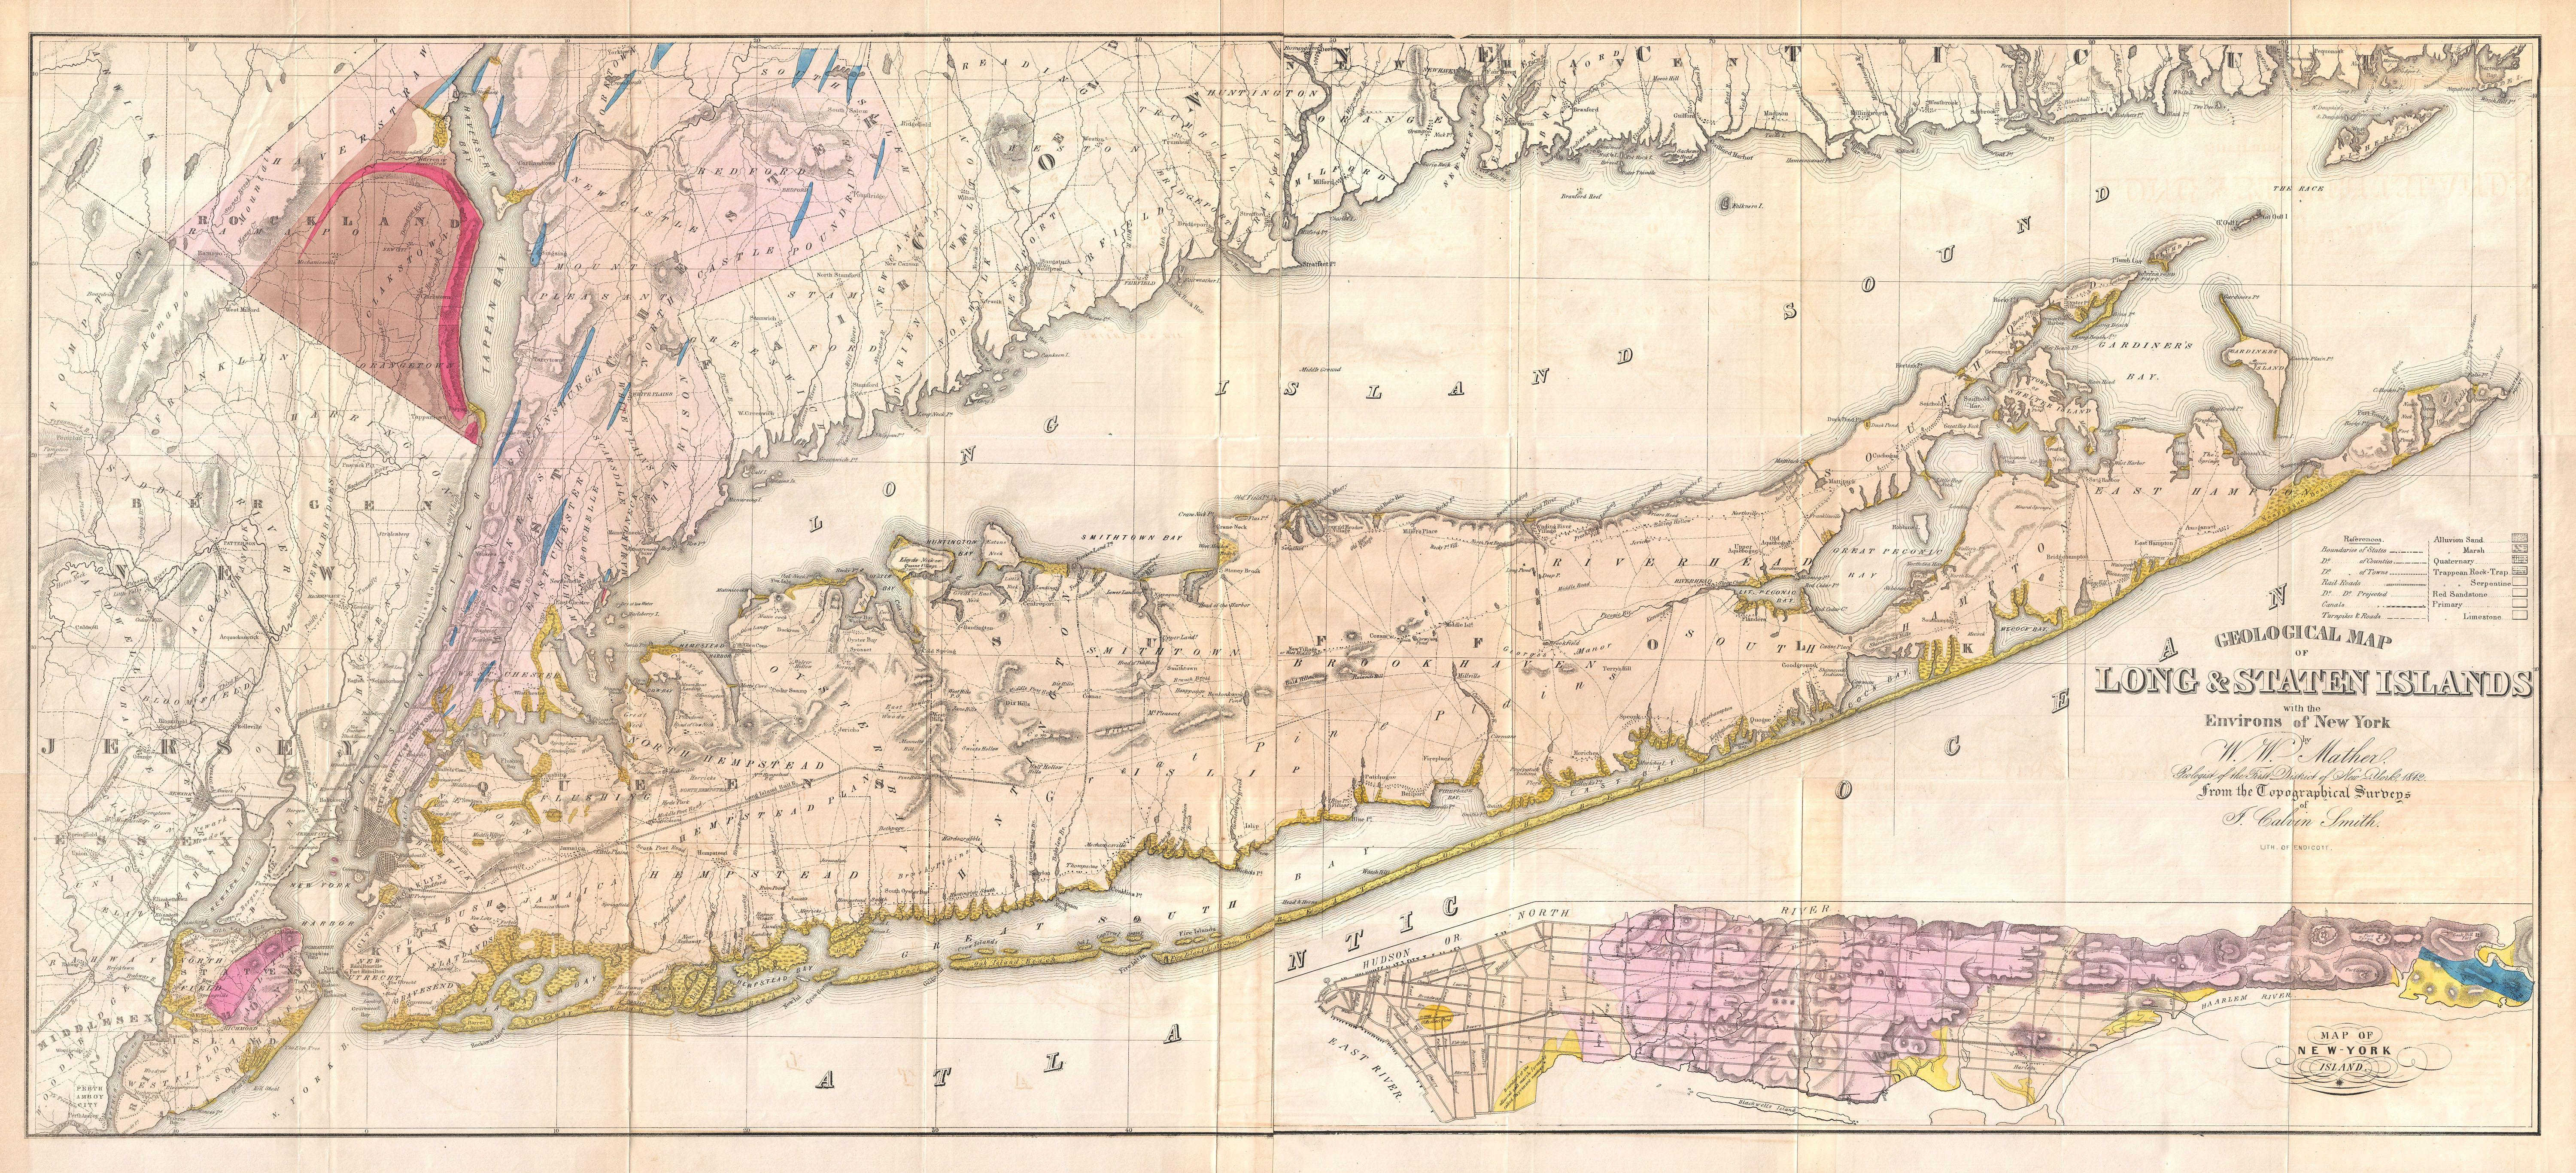 Indian Tribes Of Long Island New York